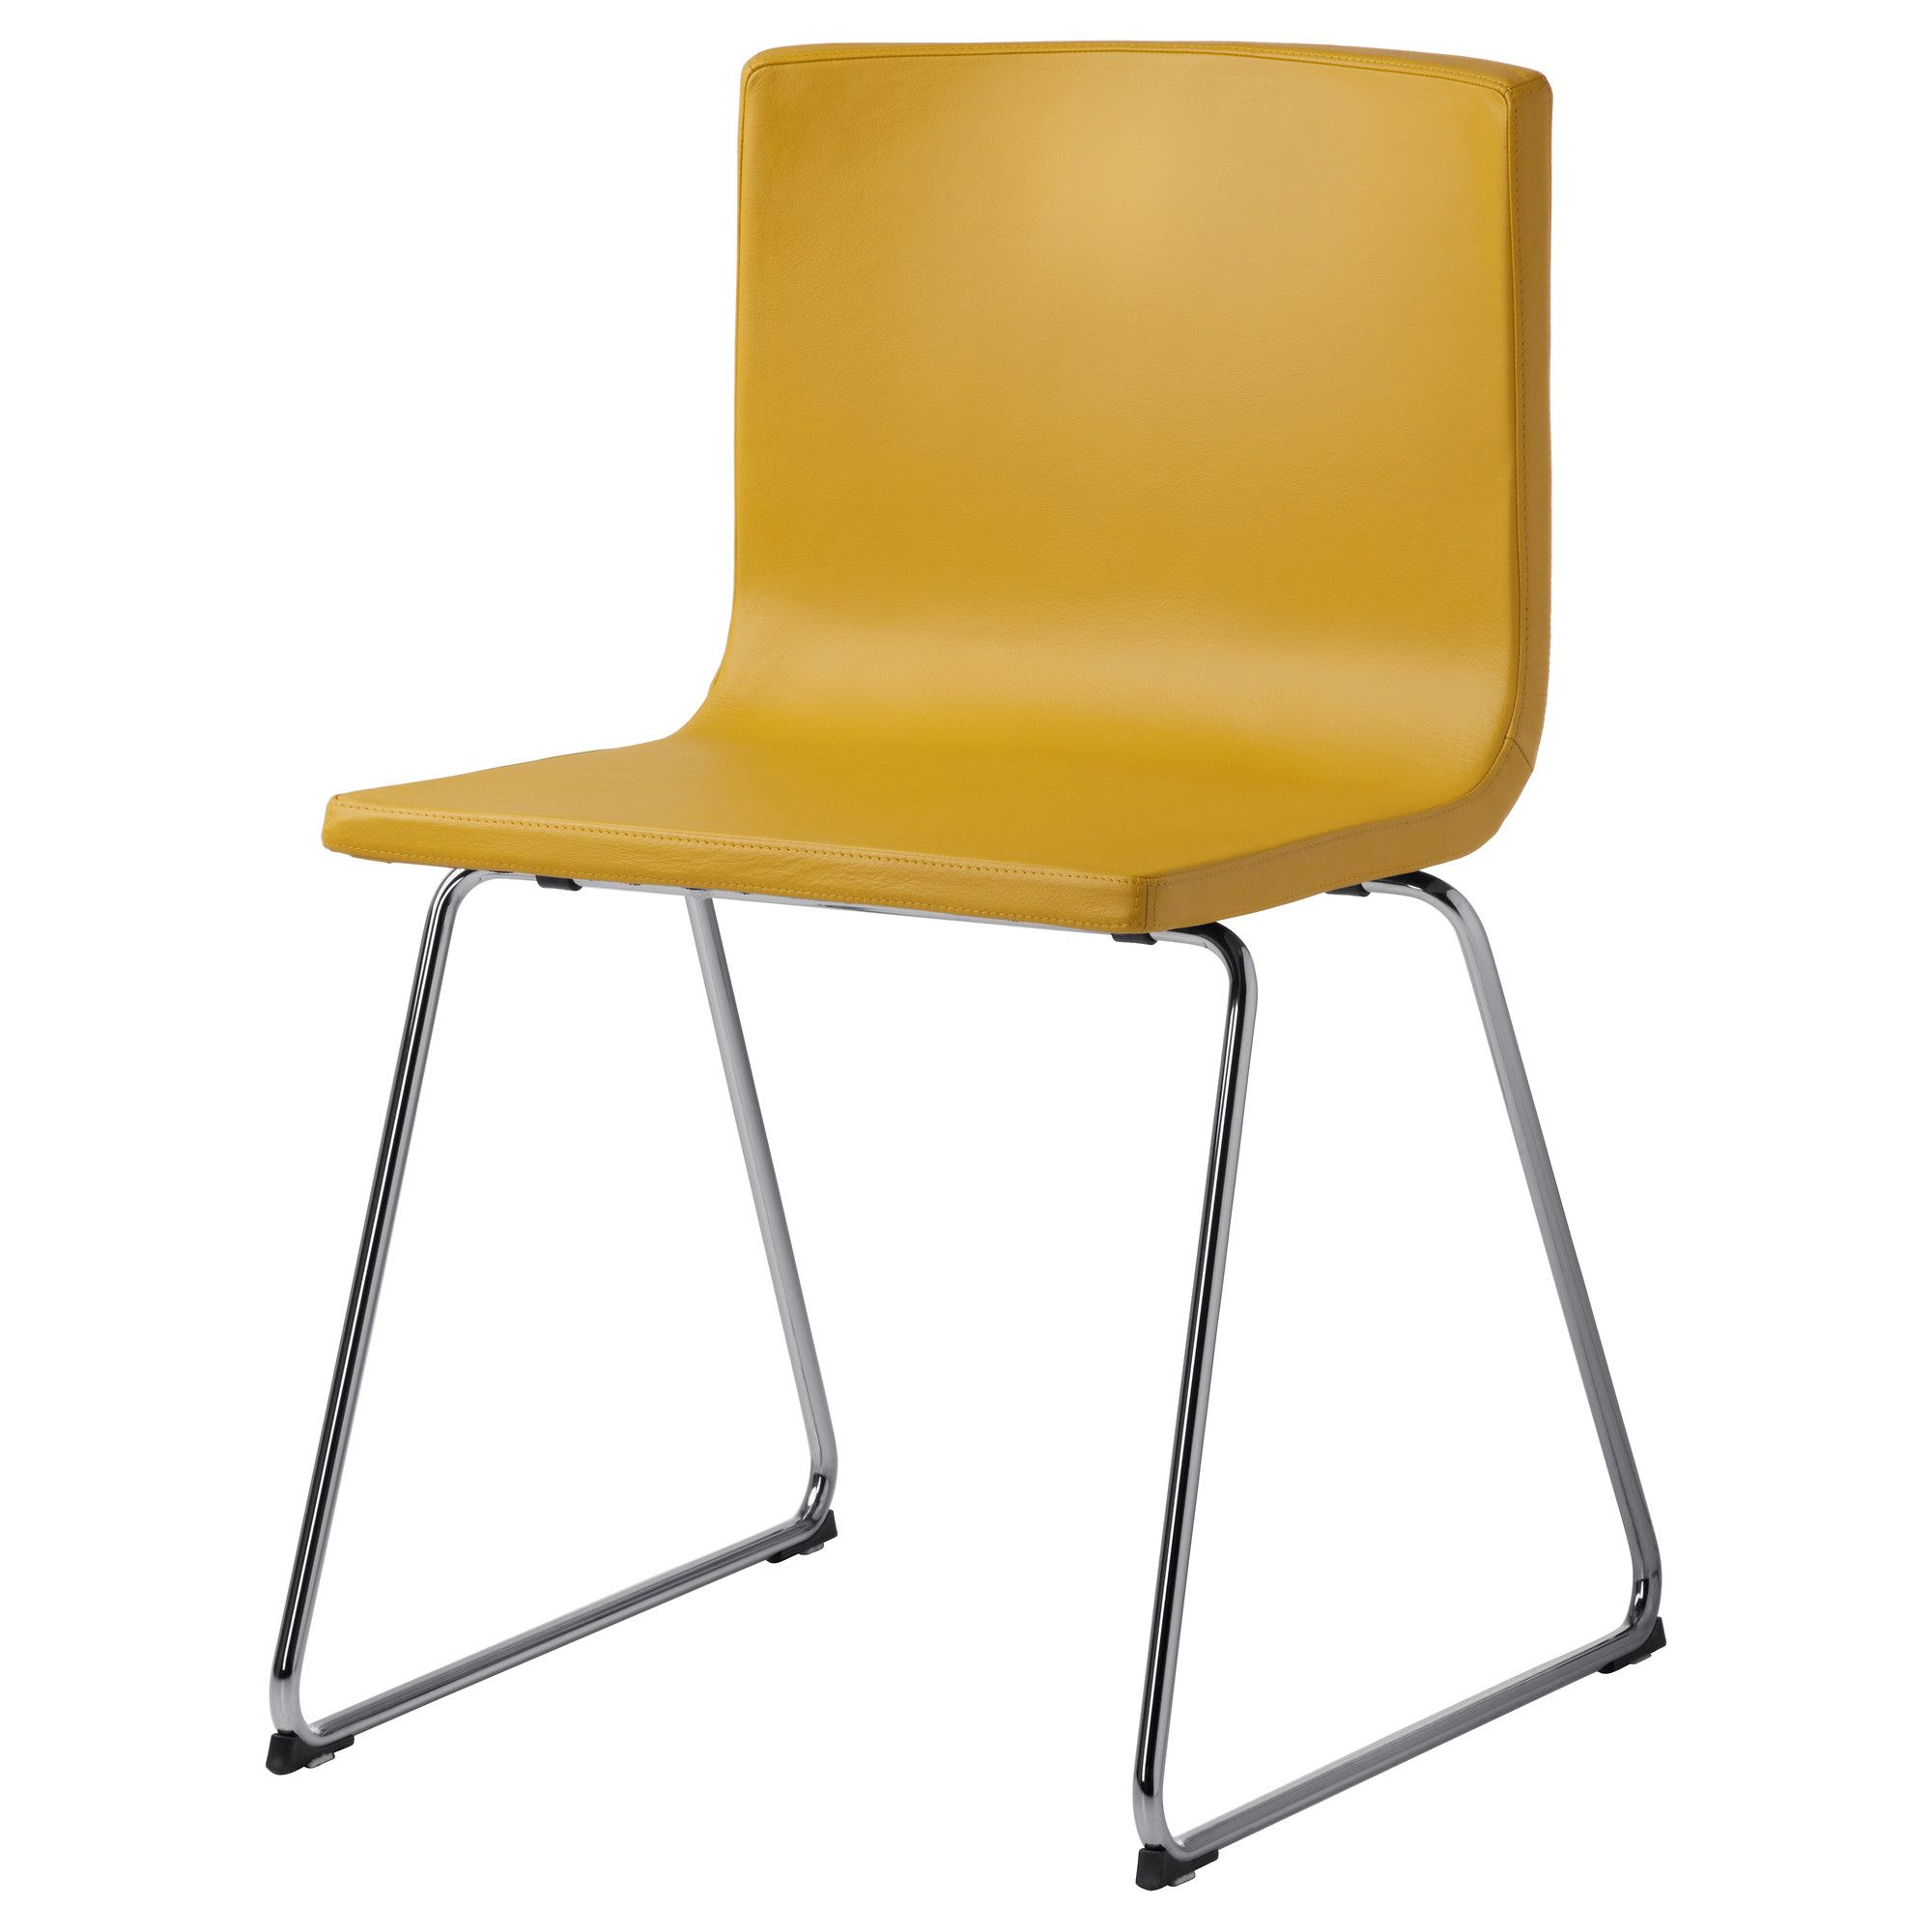 kitchen chairs ikea BERNHARD Chair in Dark Yellow if you want to add some color to the kitchen